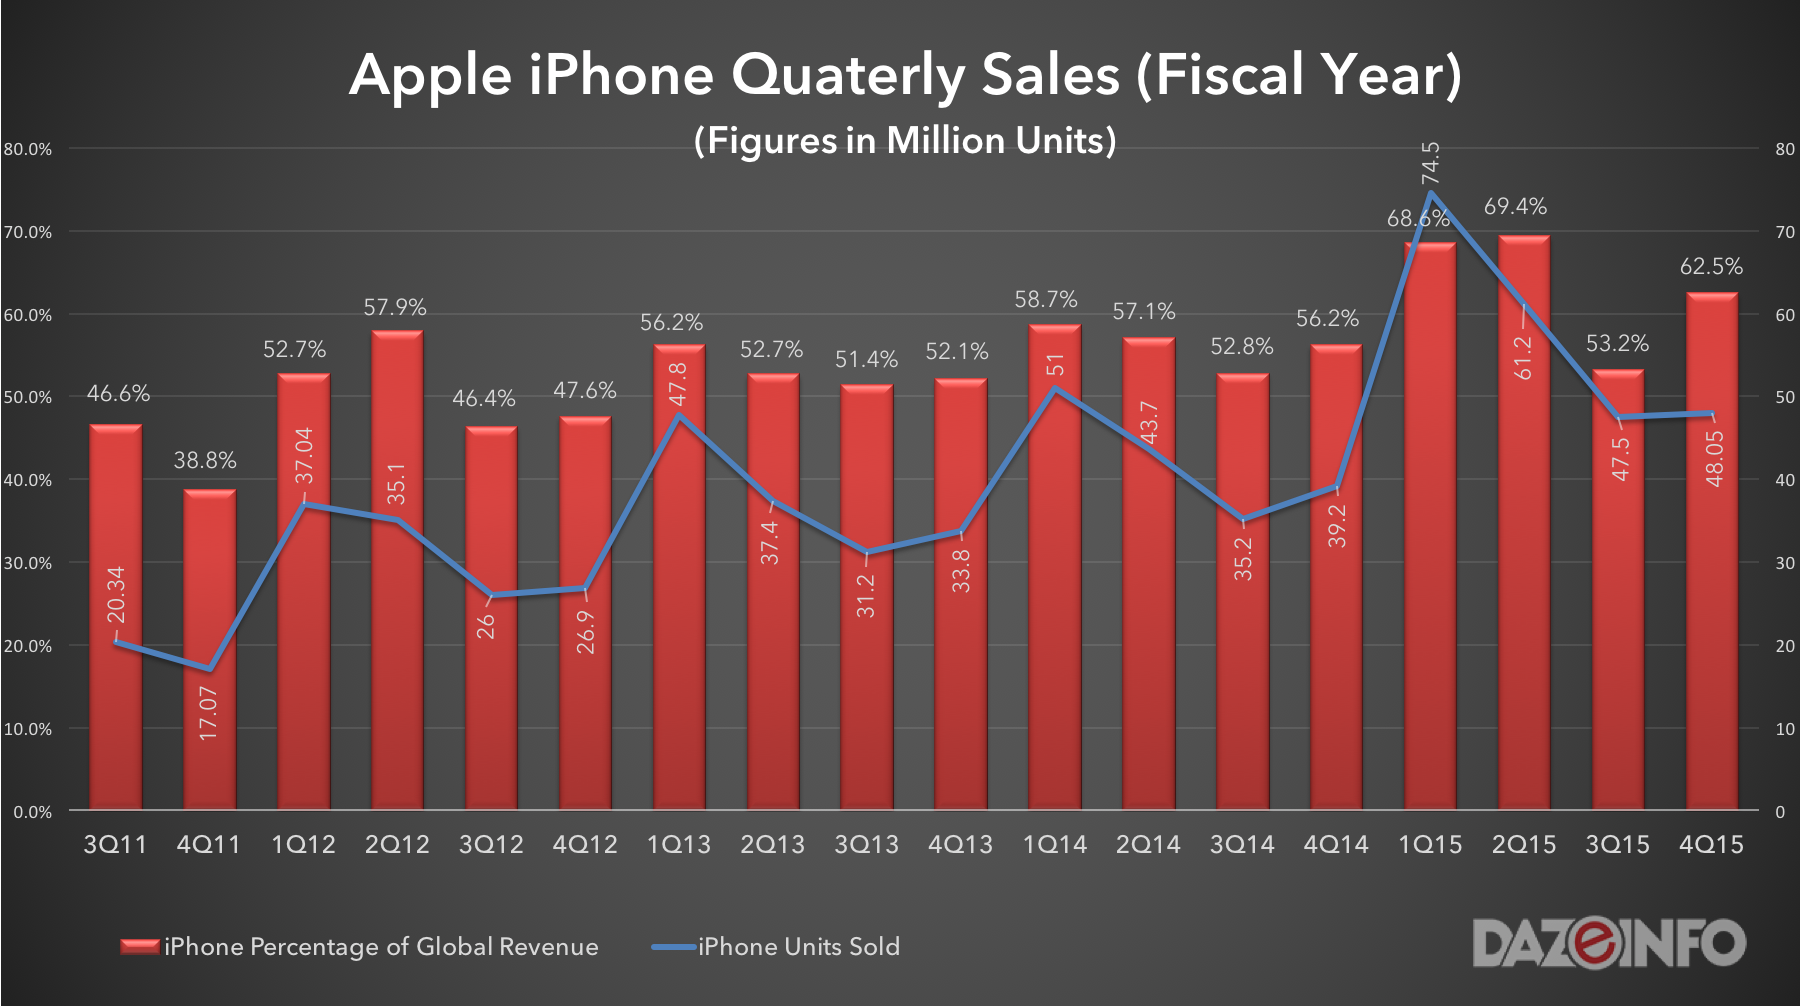 Apple iPhone sales and revenue by quarter 2015